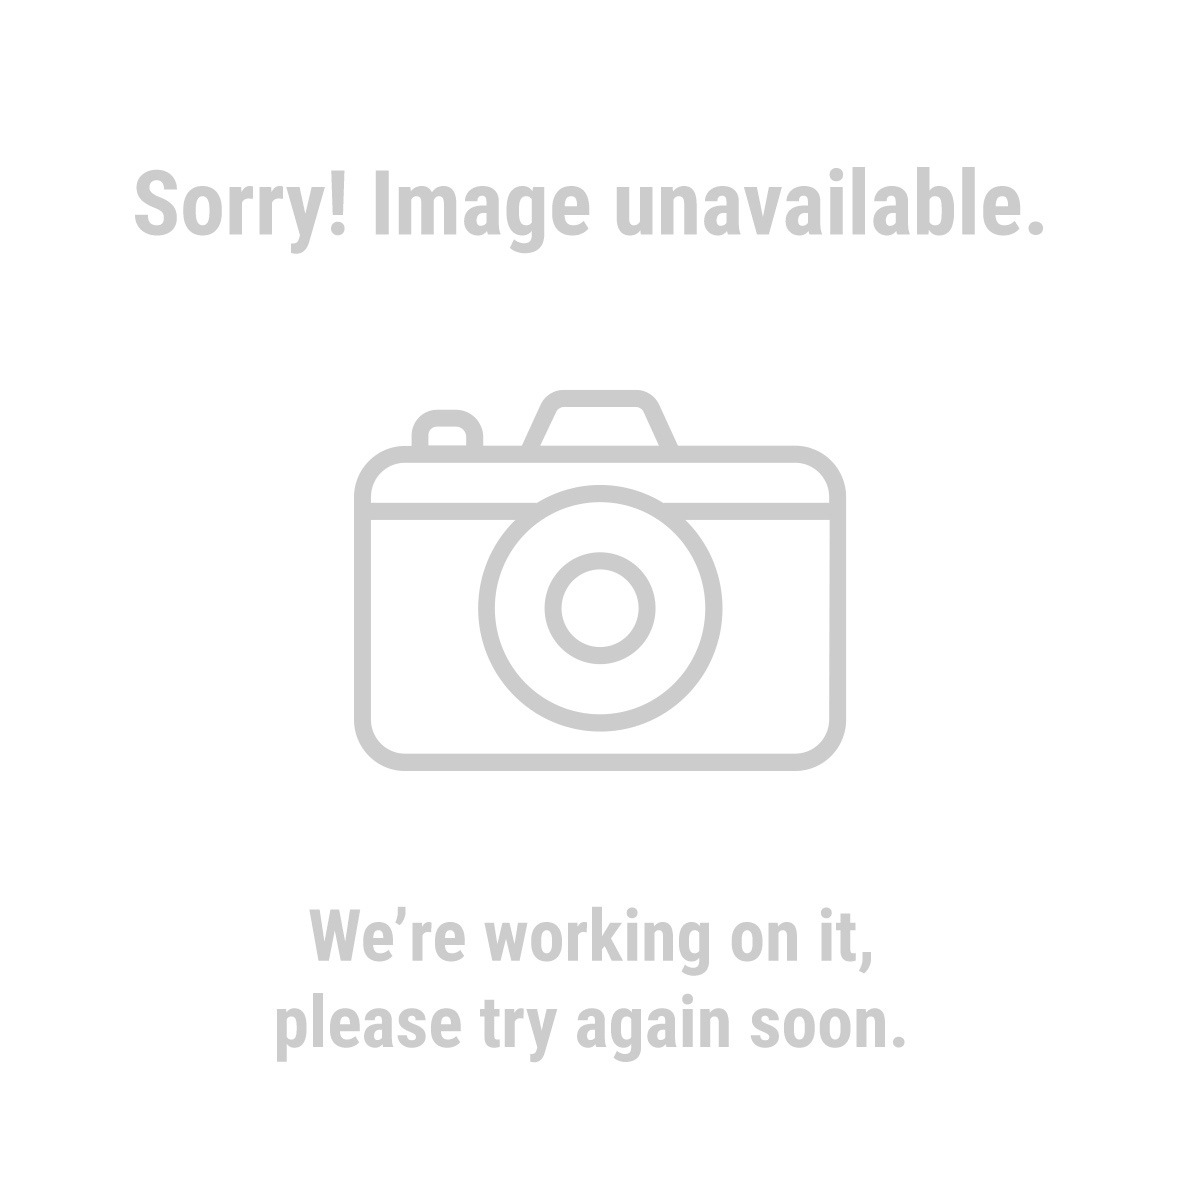 Western Safety Gloves 68309 Mechanics Gloves, X-Large